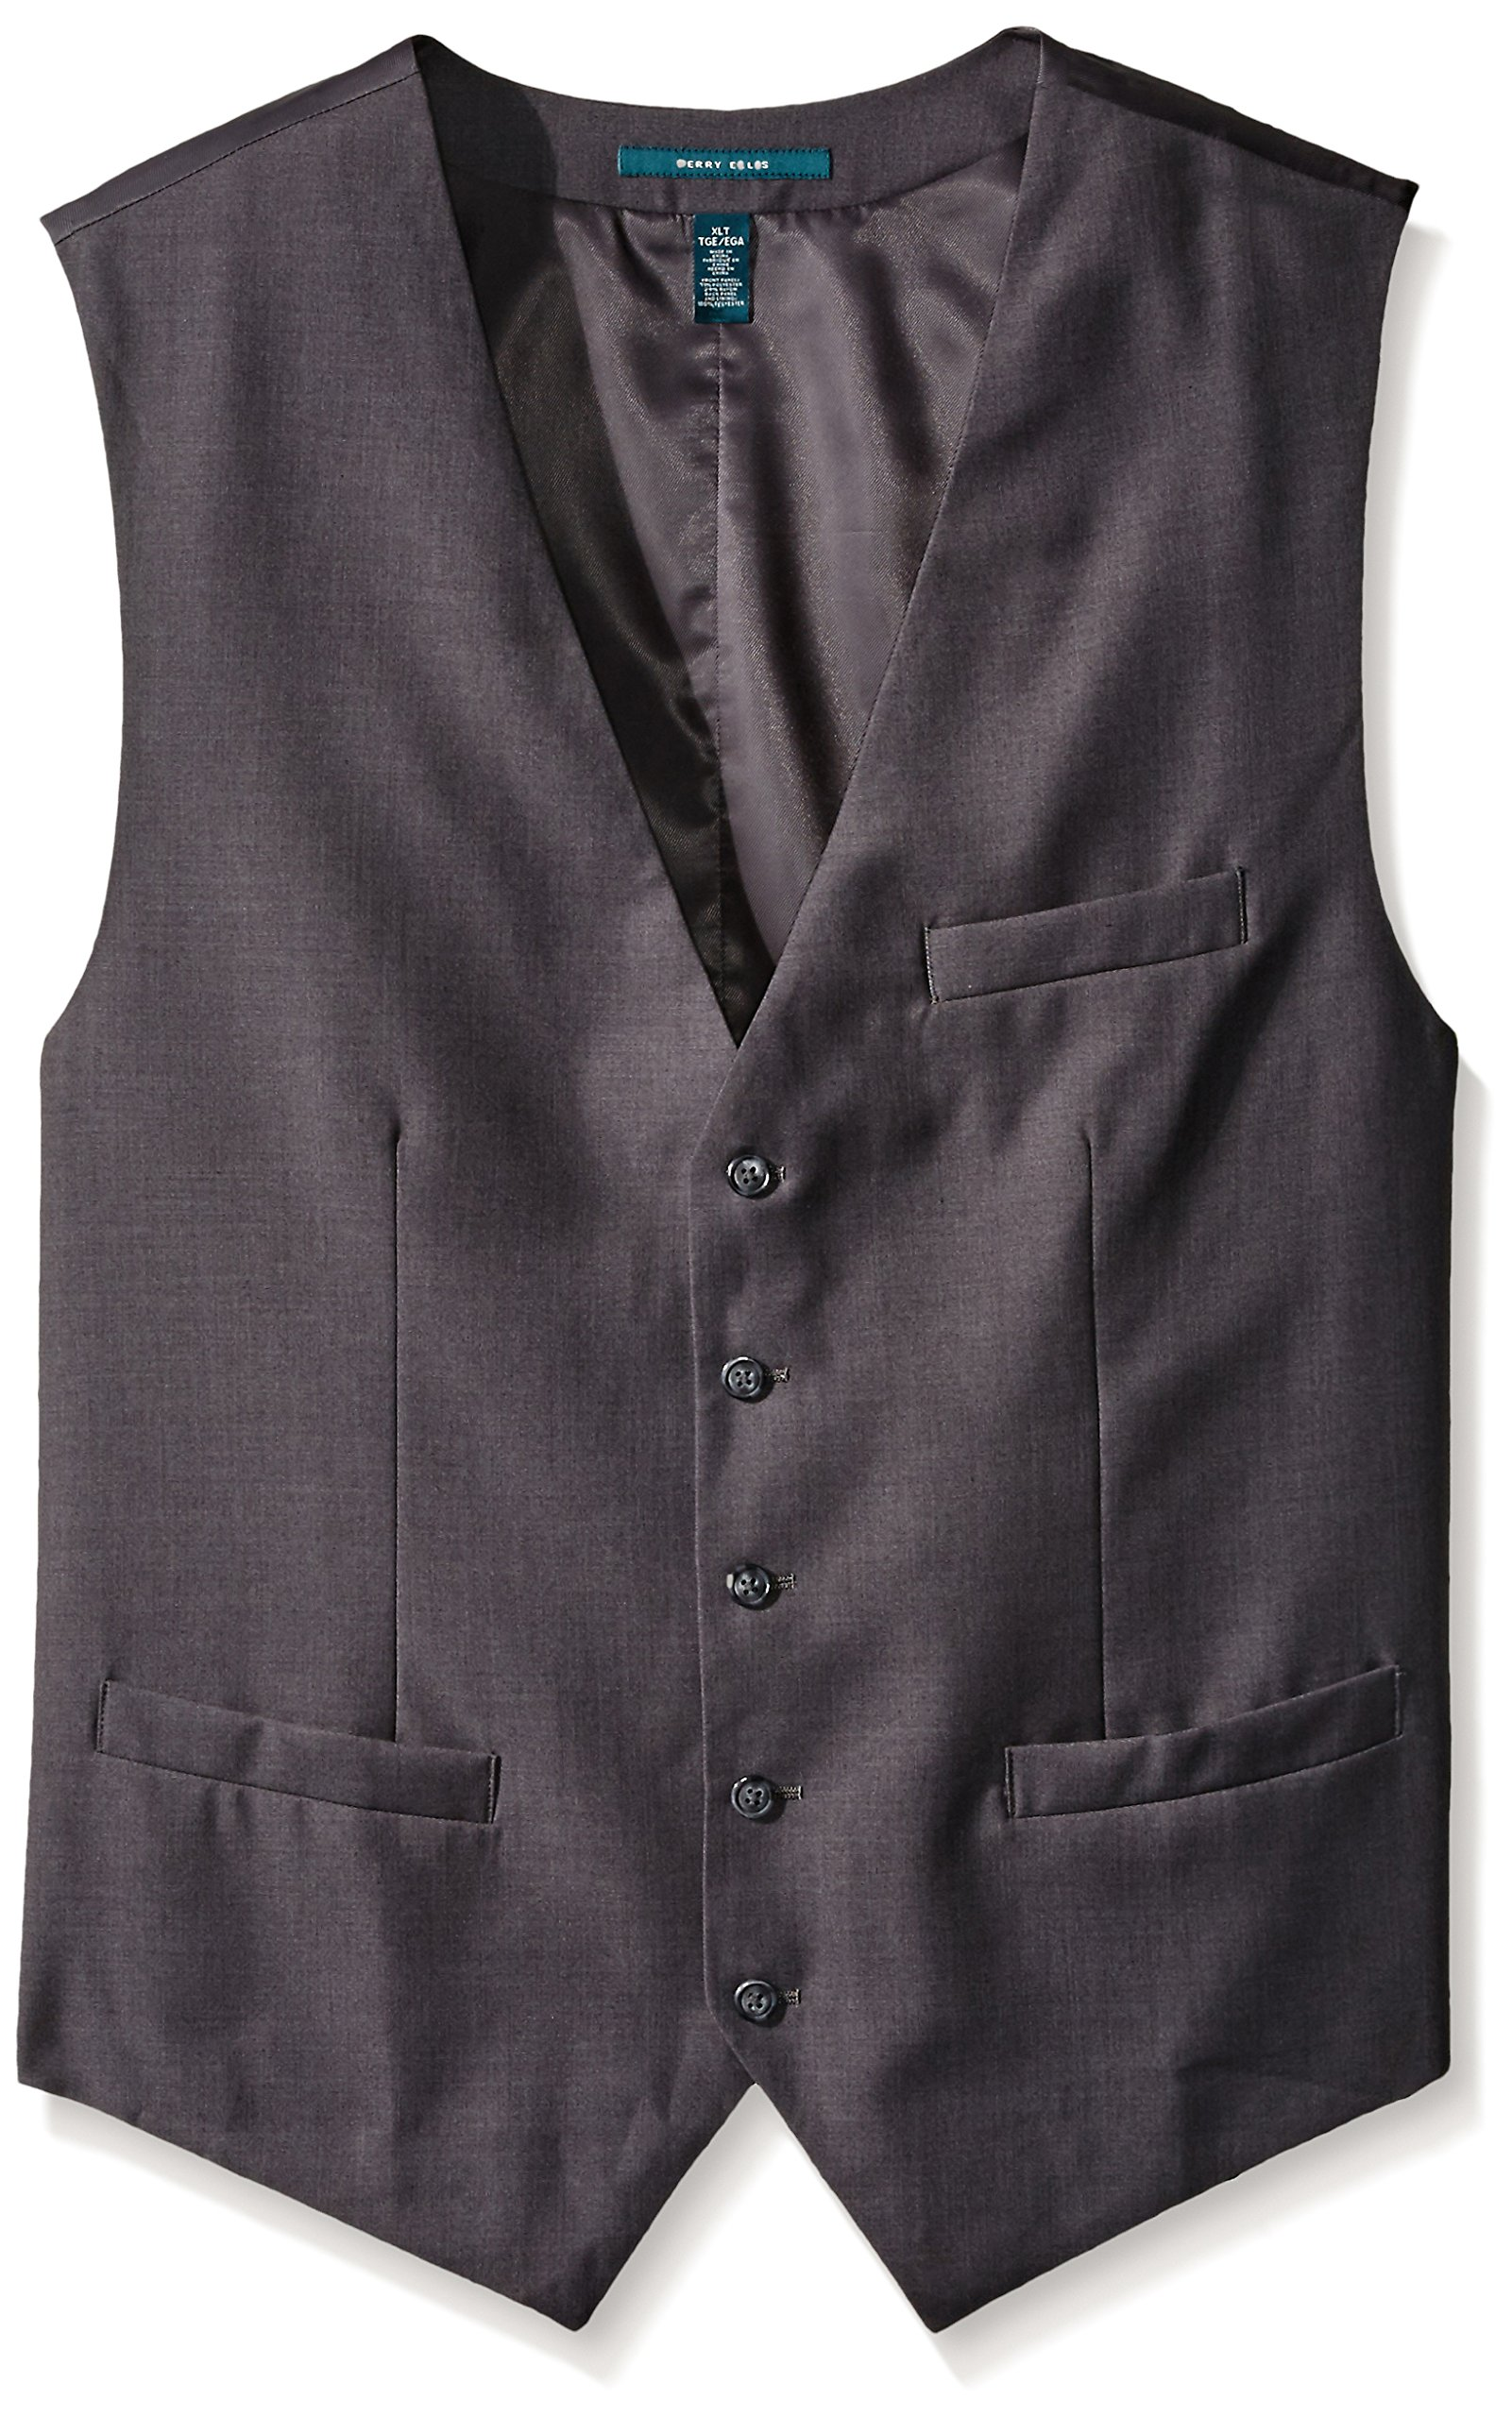 Perry Ellis Men's Big-Tall Solid Vest, Charcoal Heather, X-Large/Tall